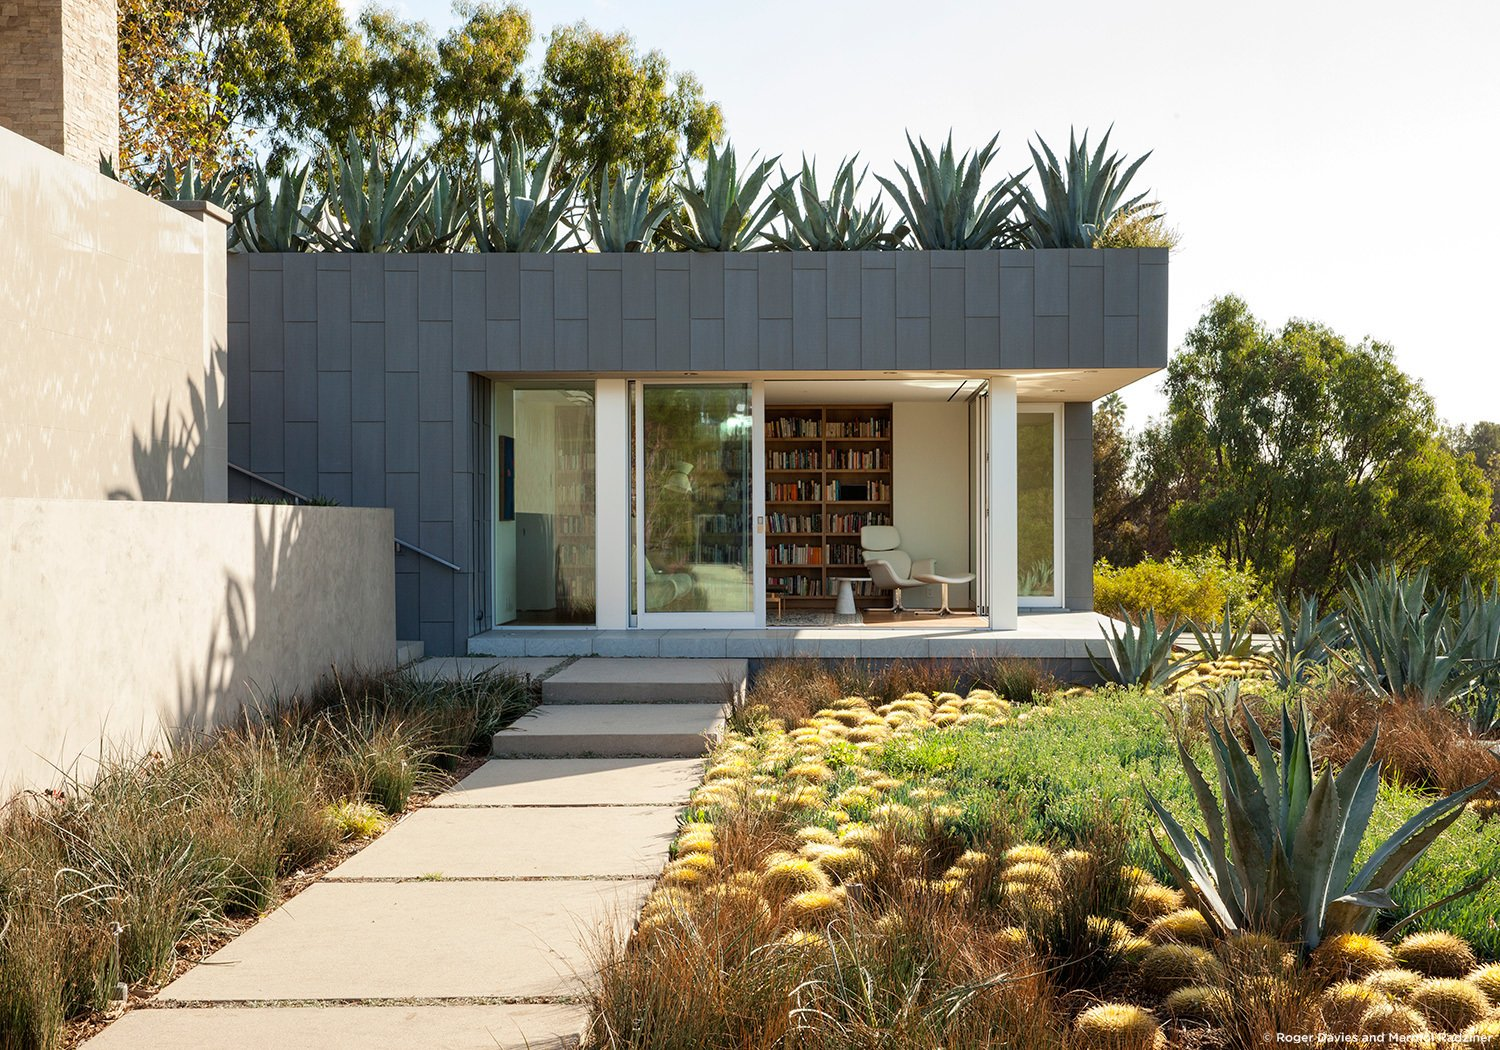 #SummitridgeResidence #modern #midcentury #levels #exterior #outside #outdoor #landscape #green #pathway #geometry #rectilinear #structure #interior #bookshelves #BeverlyHills #MarmolRadziner  Summitridge Residence by Marmol Radziner